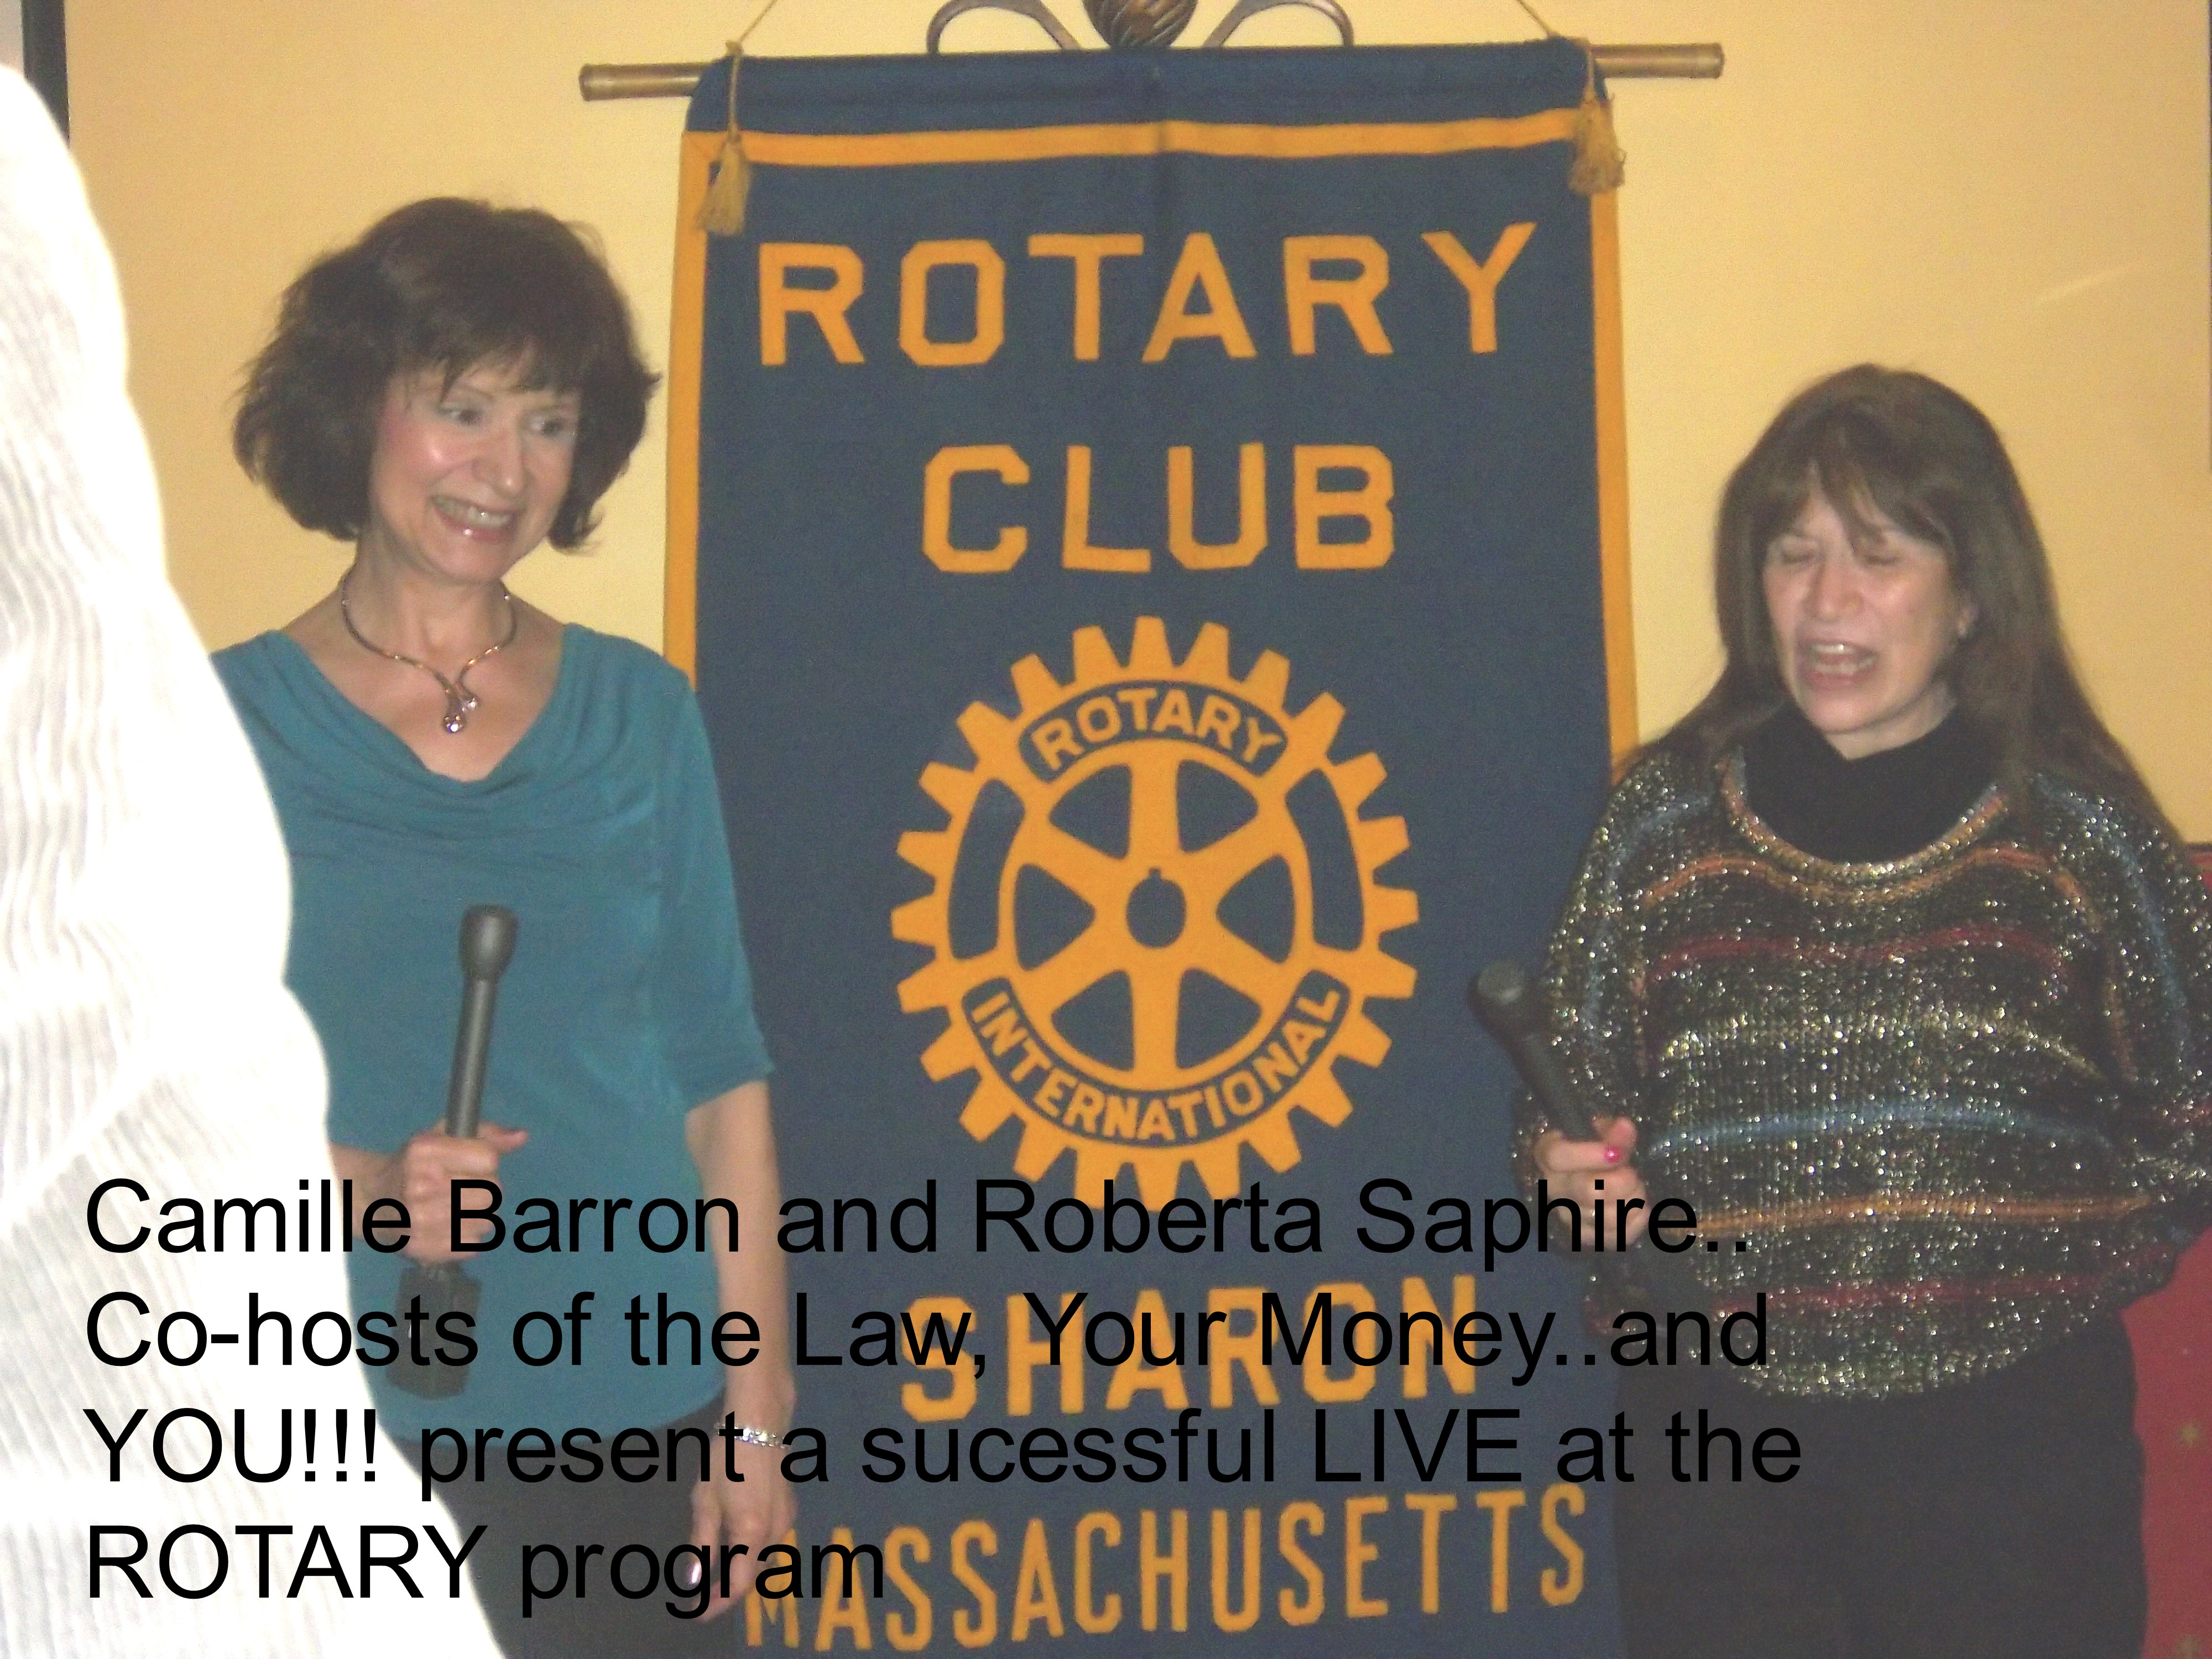 Camille and Roberta at Rotary